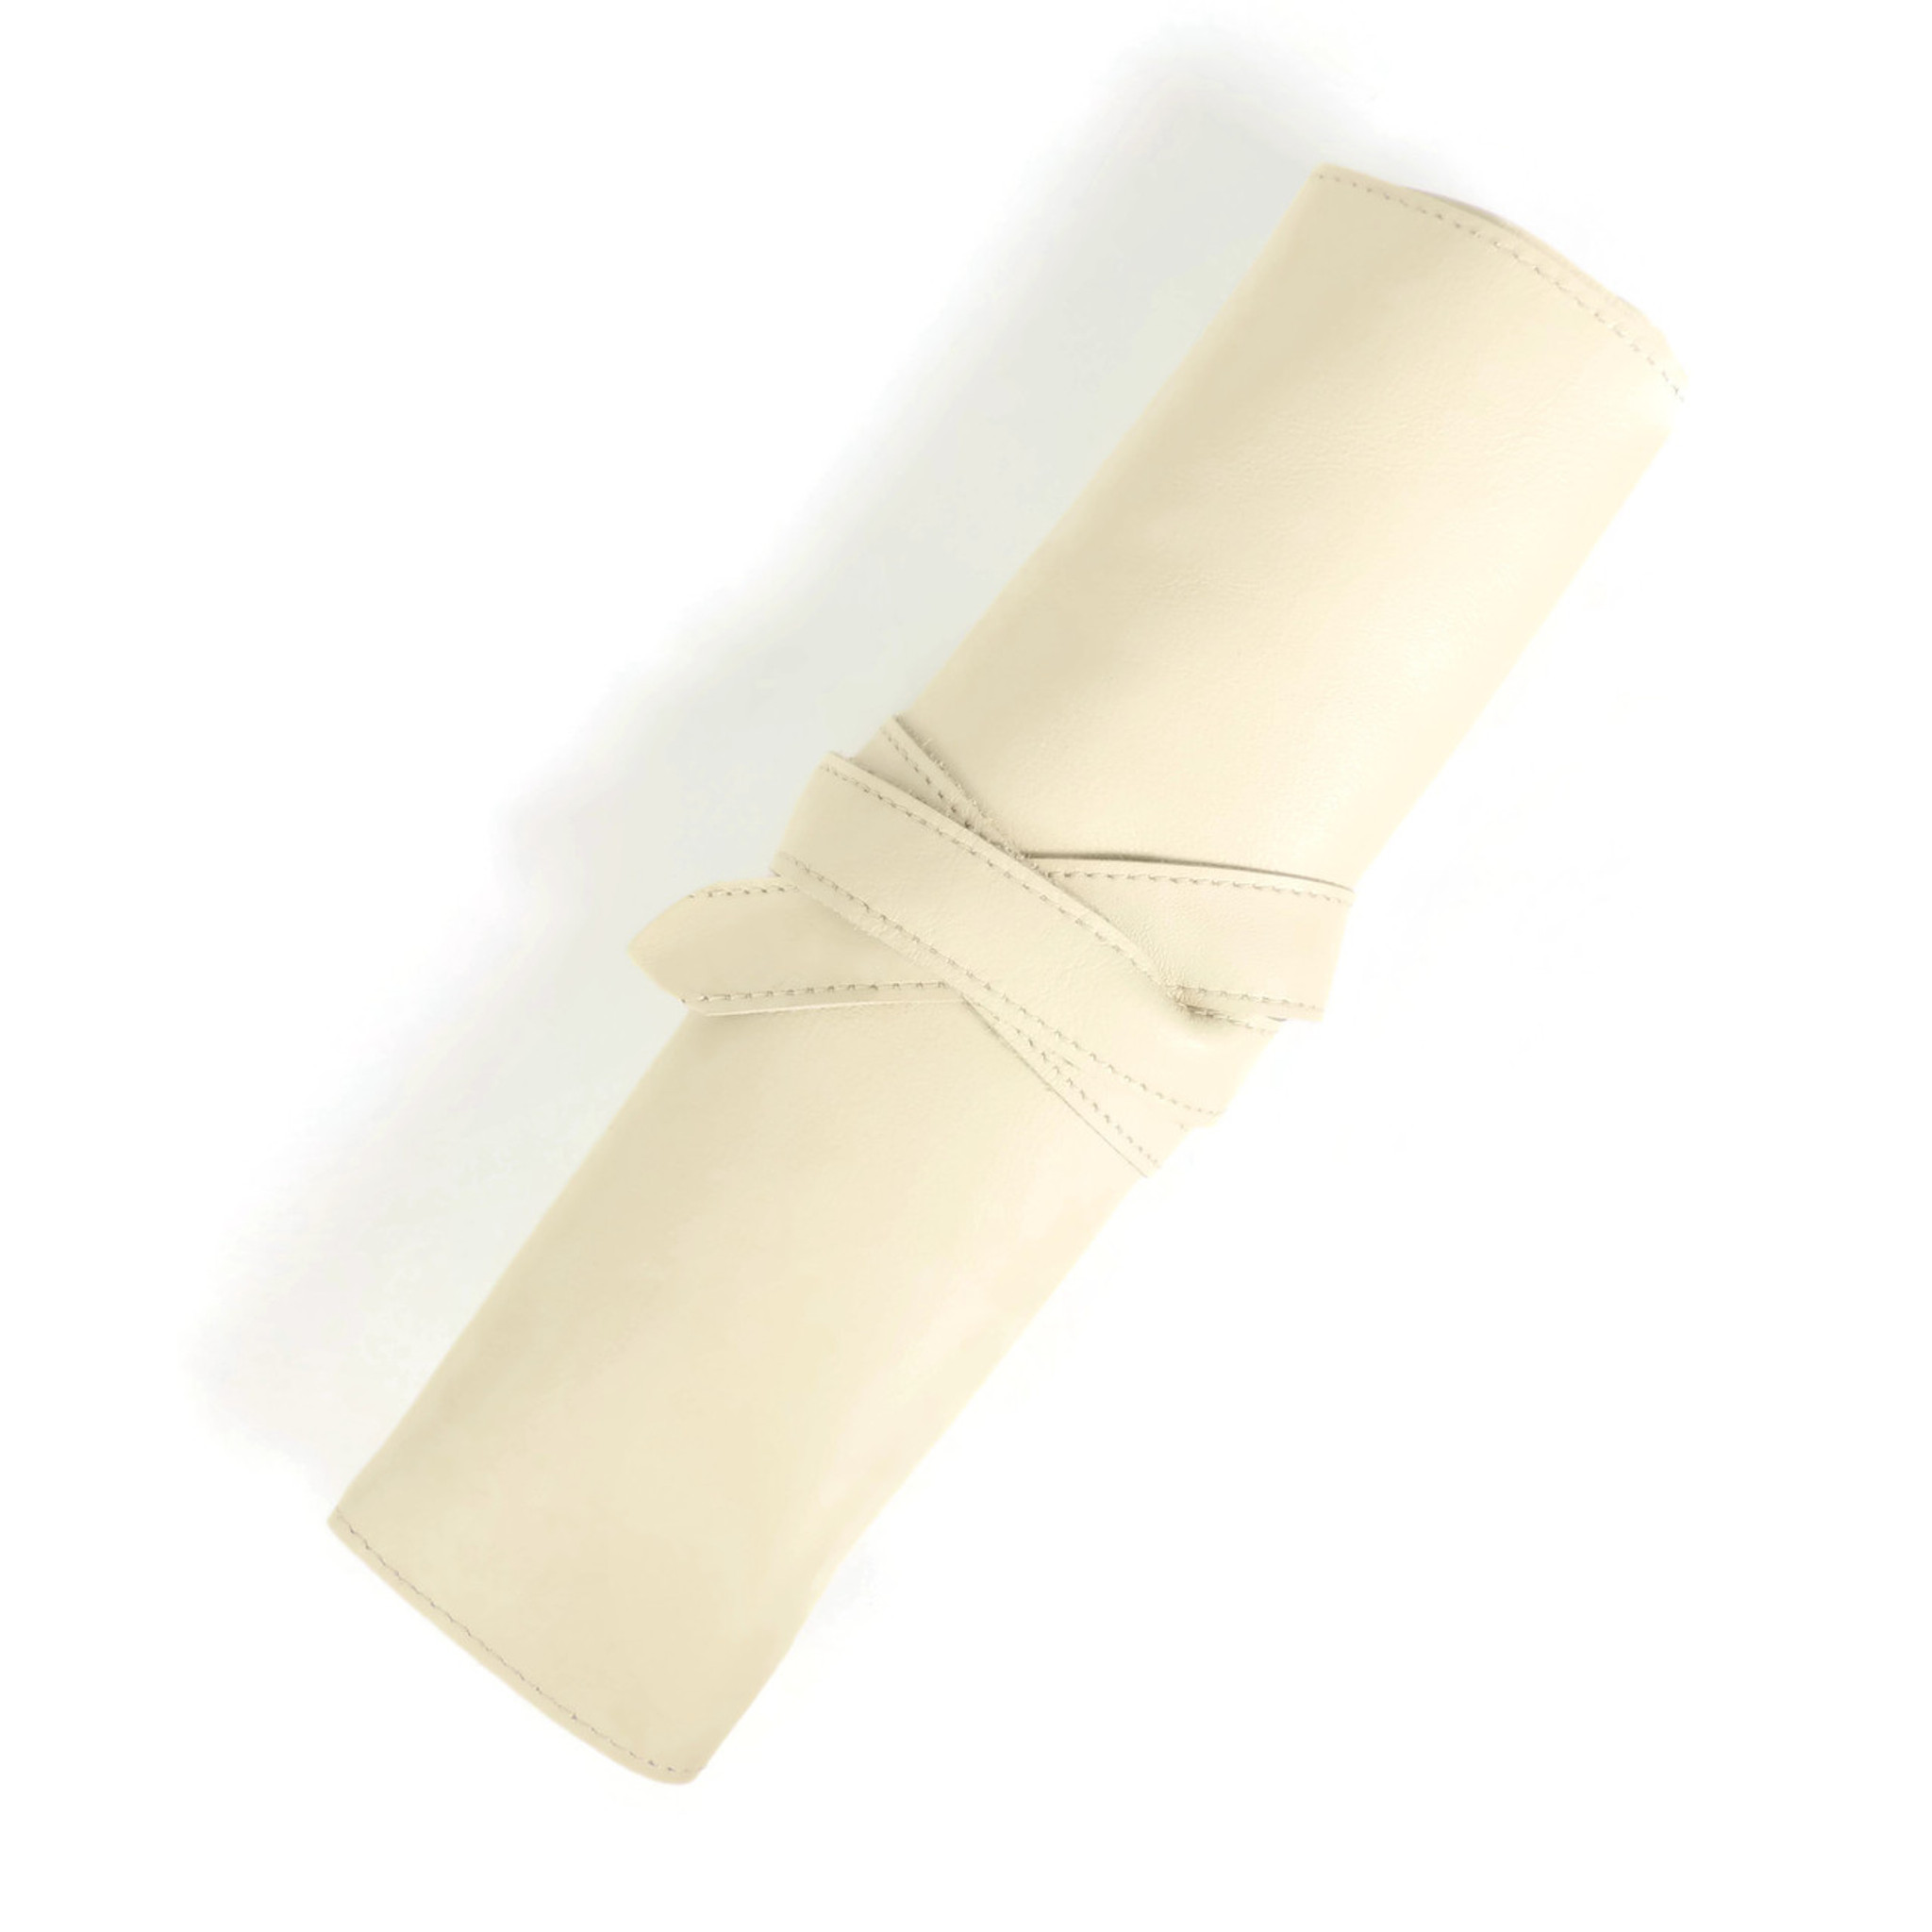 Jewelry Roll in Cream